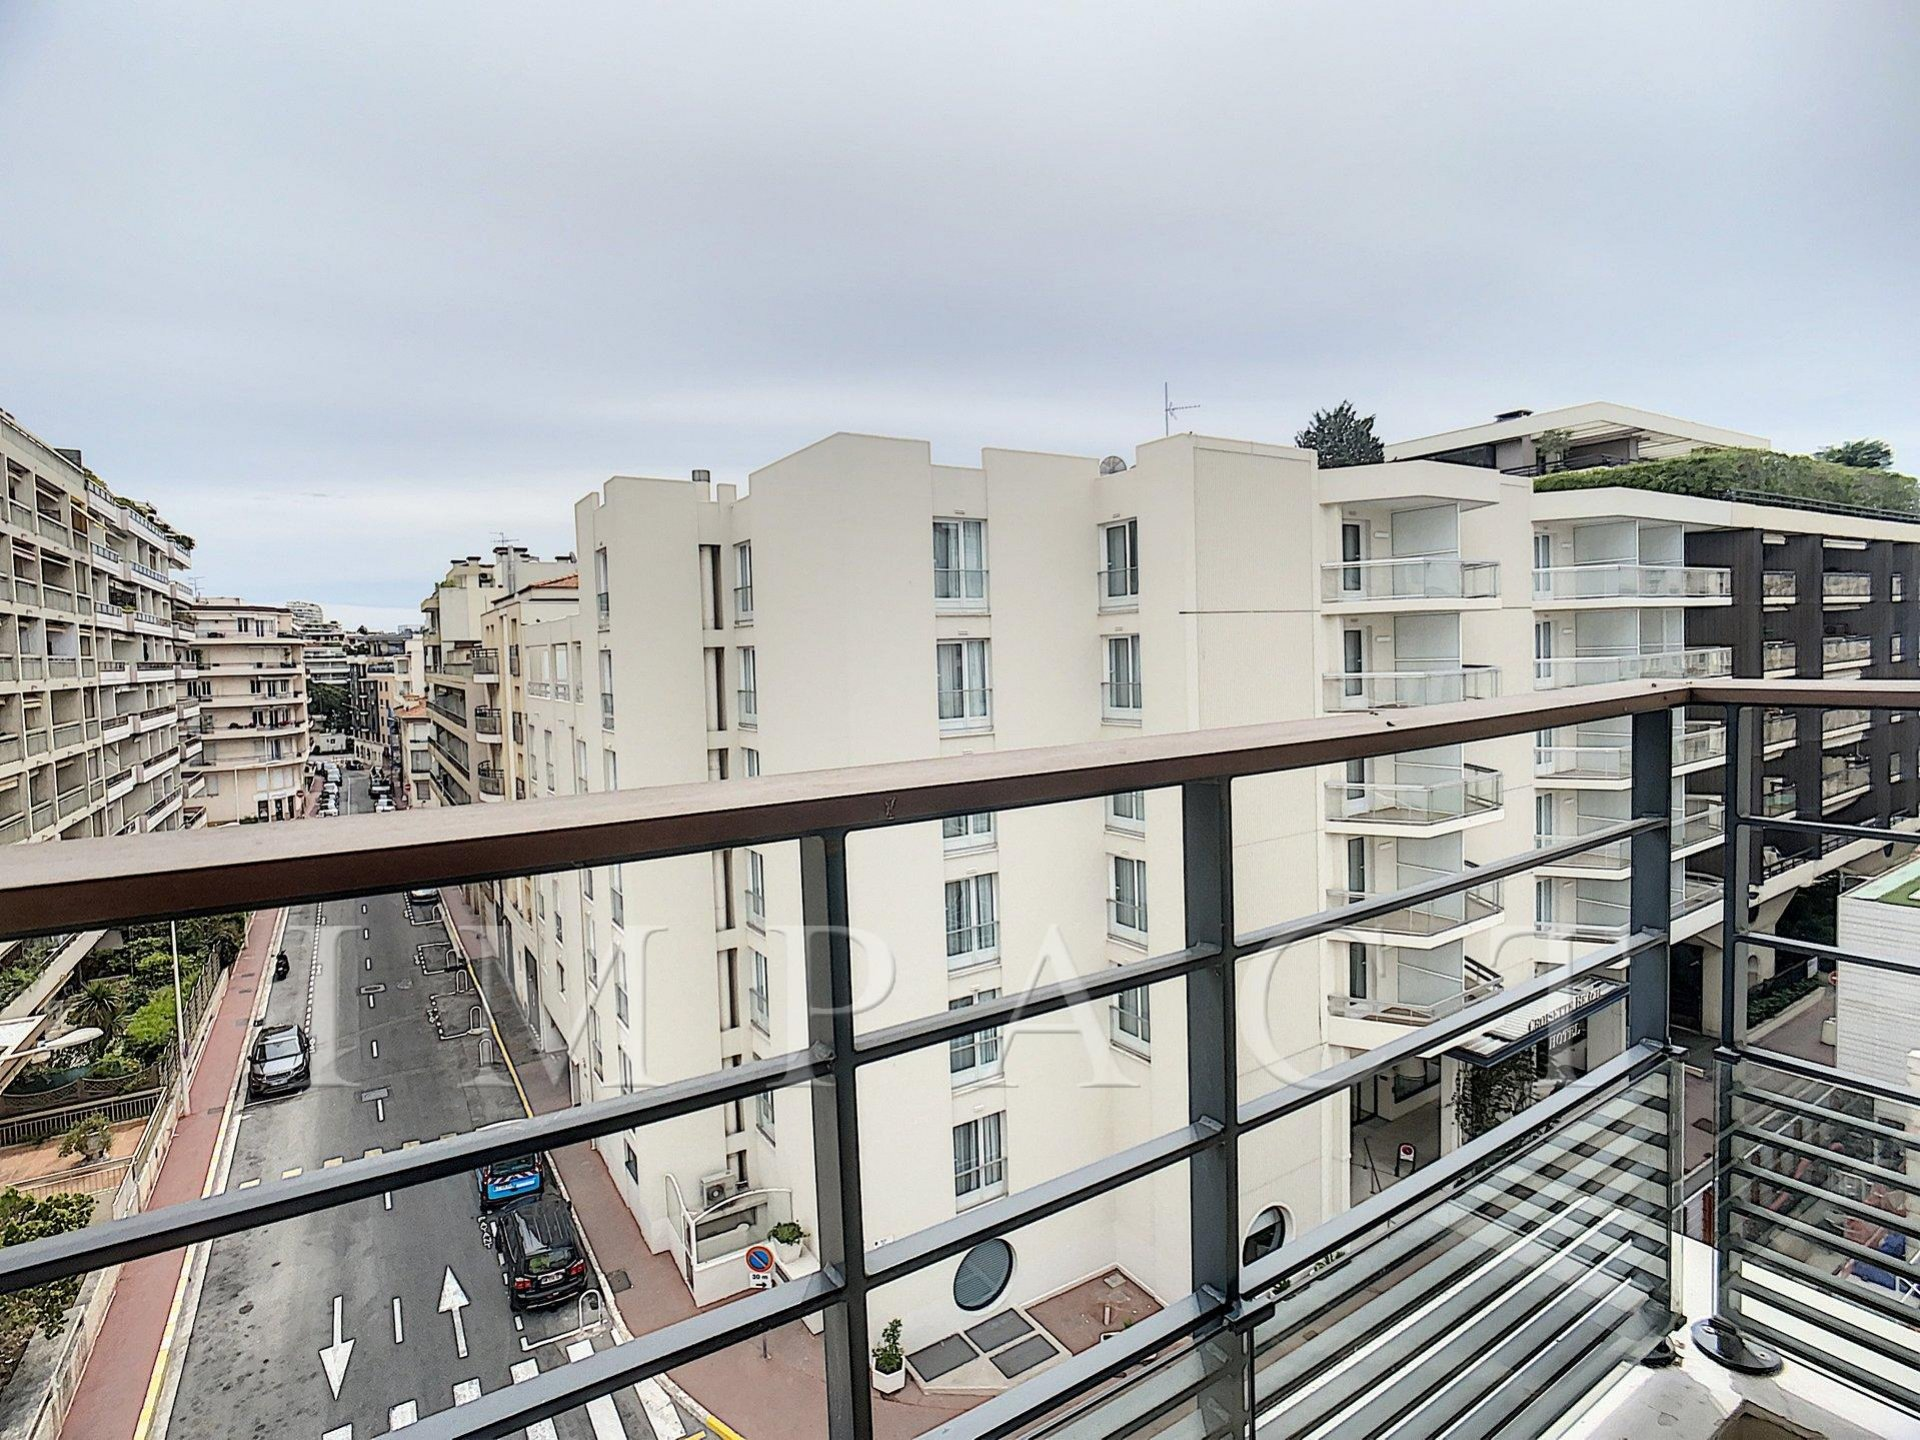 2 Bedrooms apartment to rent, Cannes